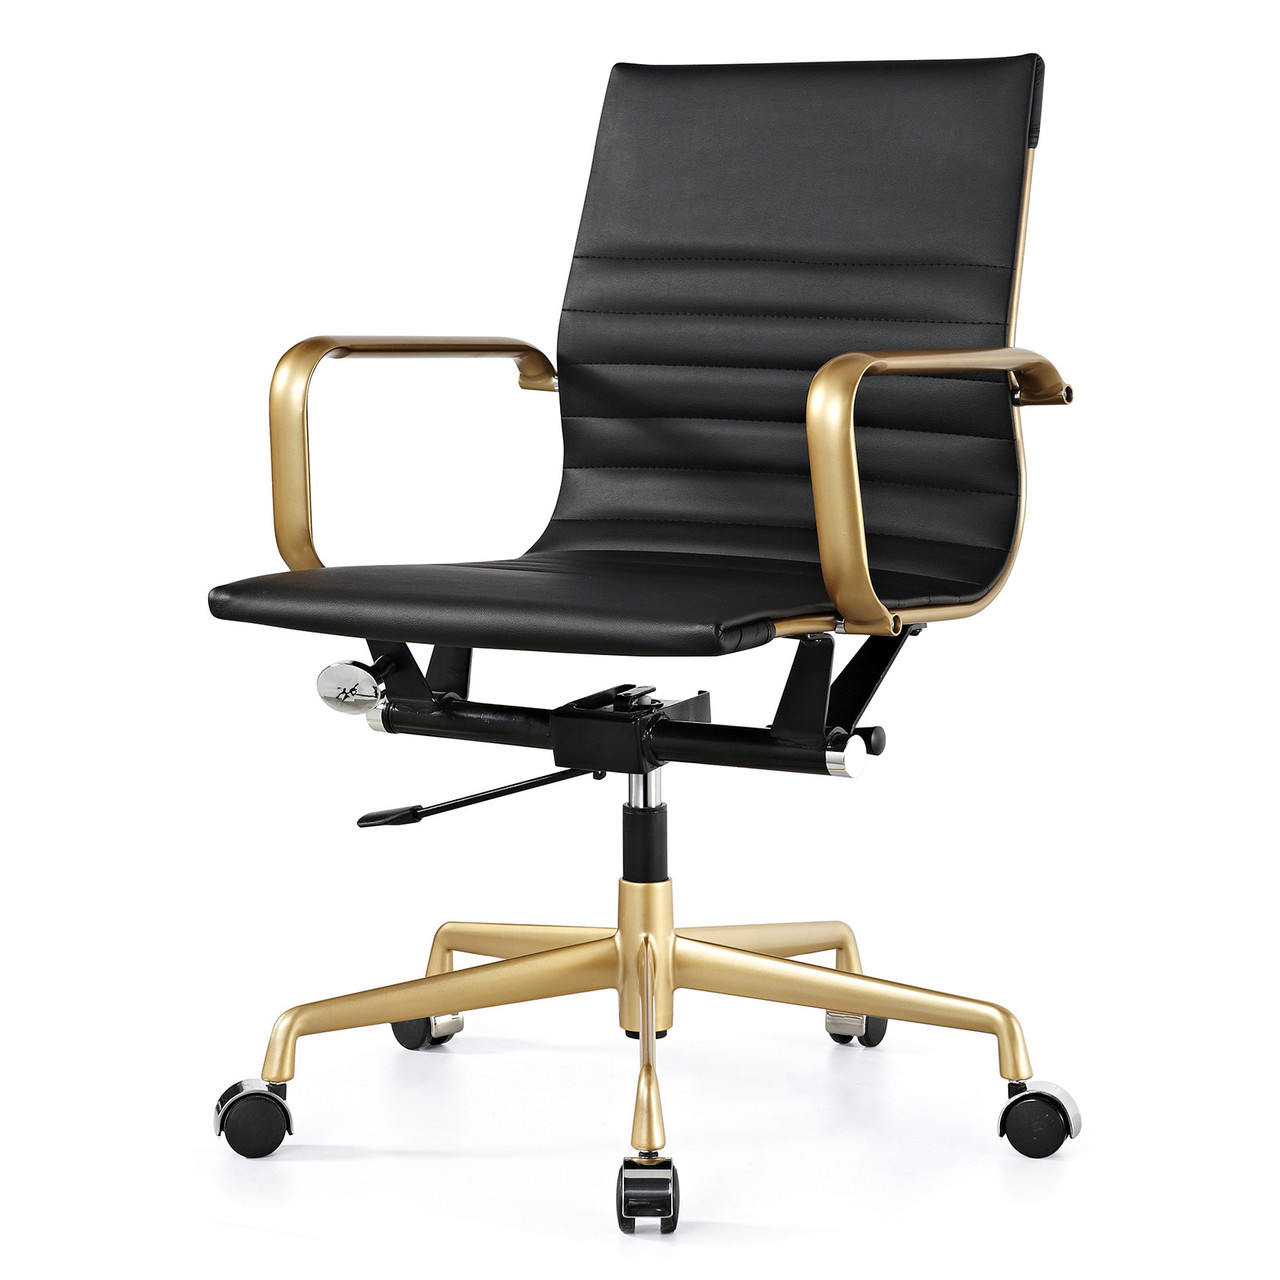 Stupendous Gold Black Vegan Leather M348 Modern Office Chairs Ocoug Best Dining Table And Chair Ideas Images Ocougorg